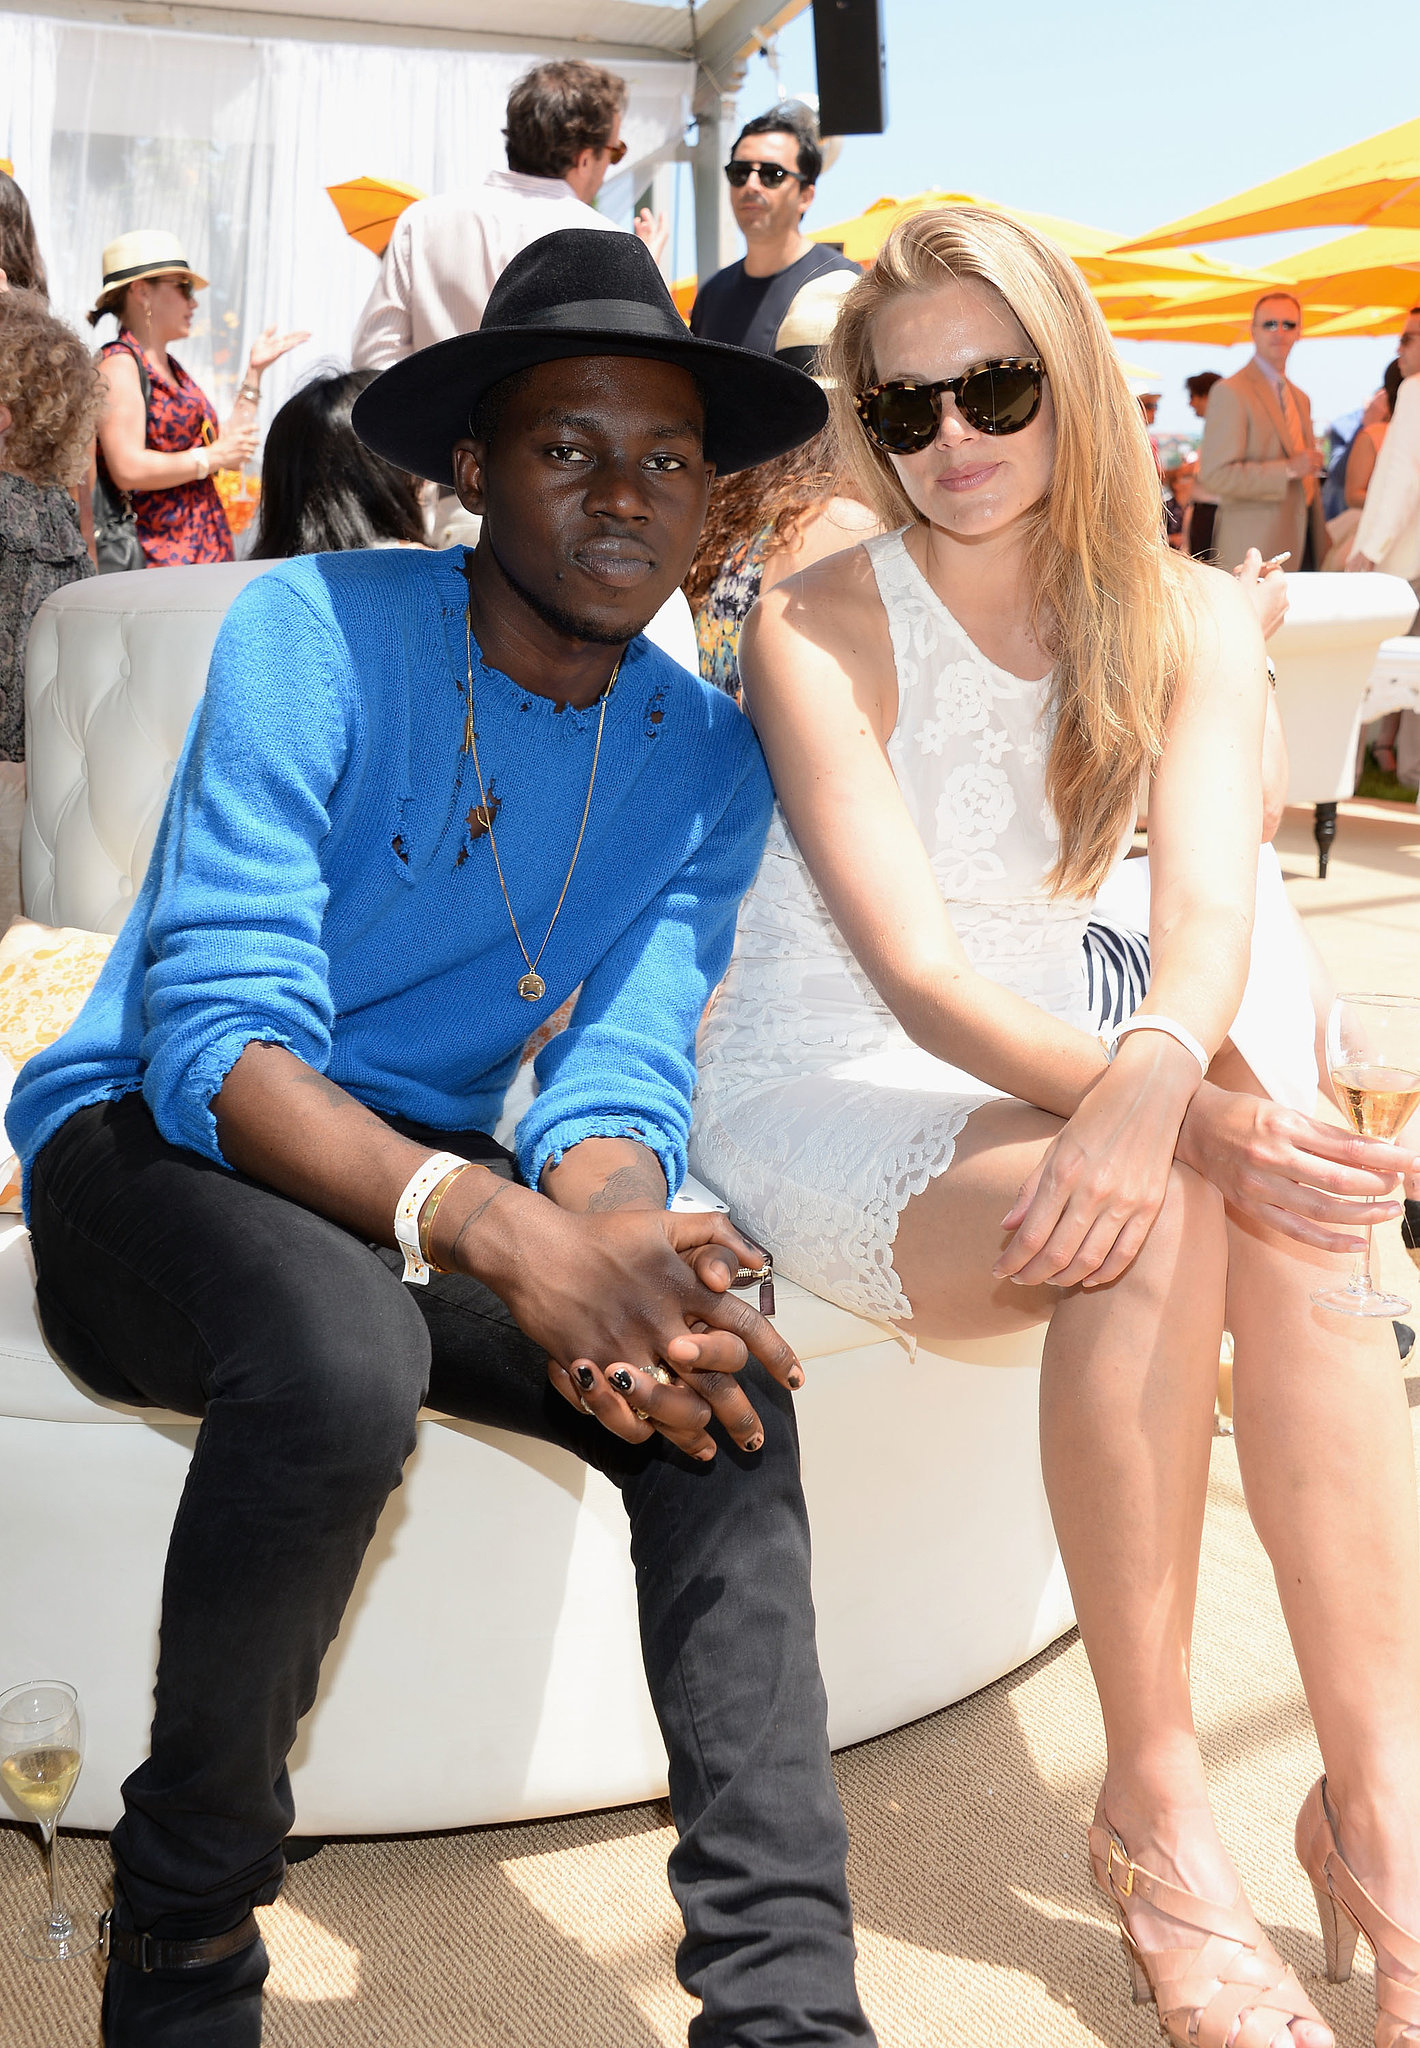 Theophilus London at the sixth annual Veuve Clicquot Polo Classic in Jer